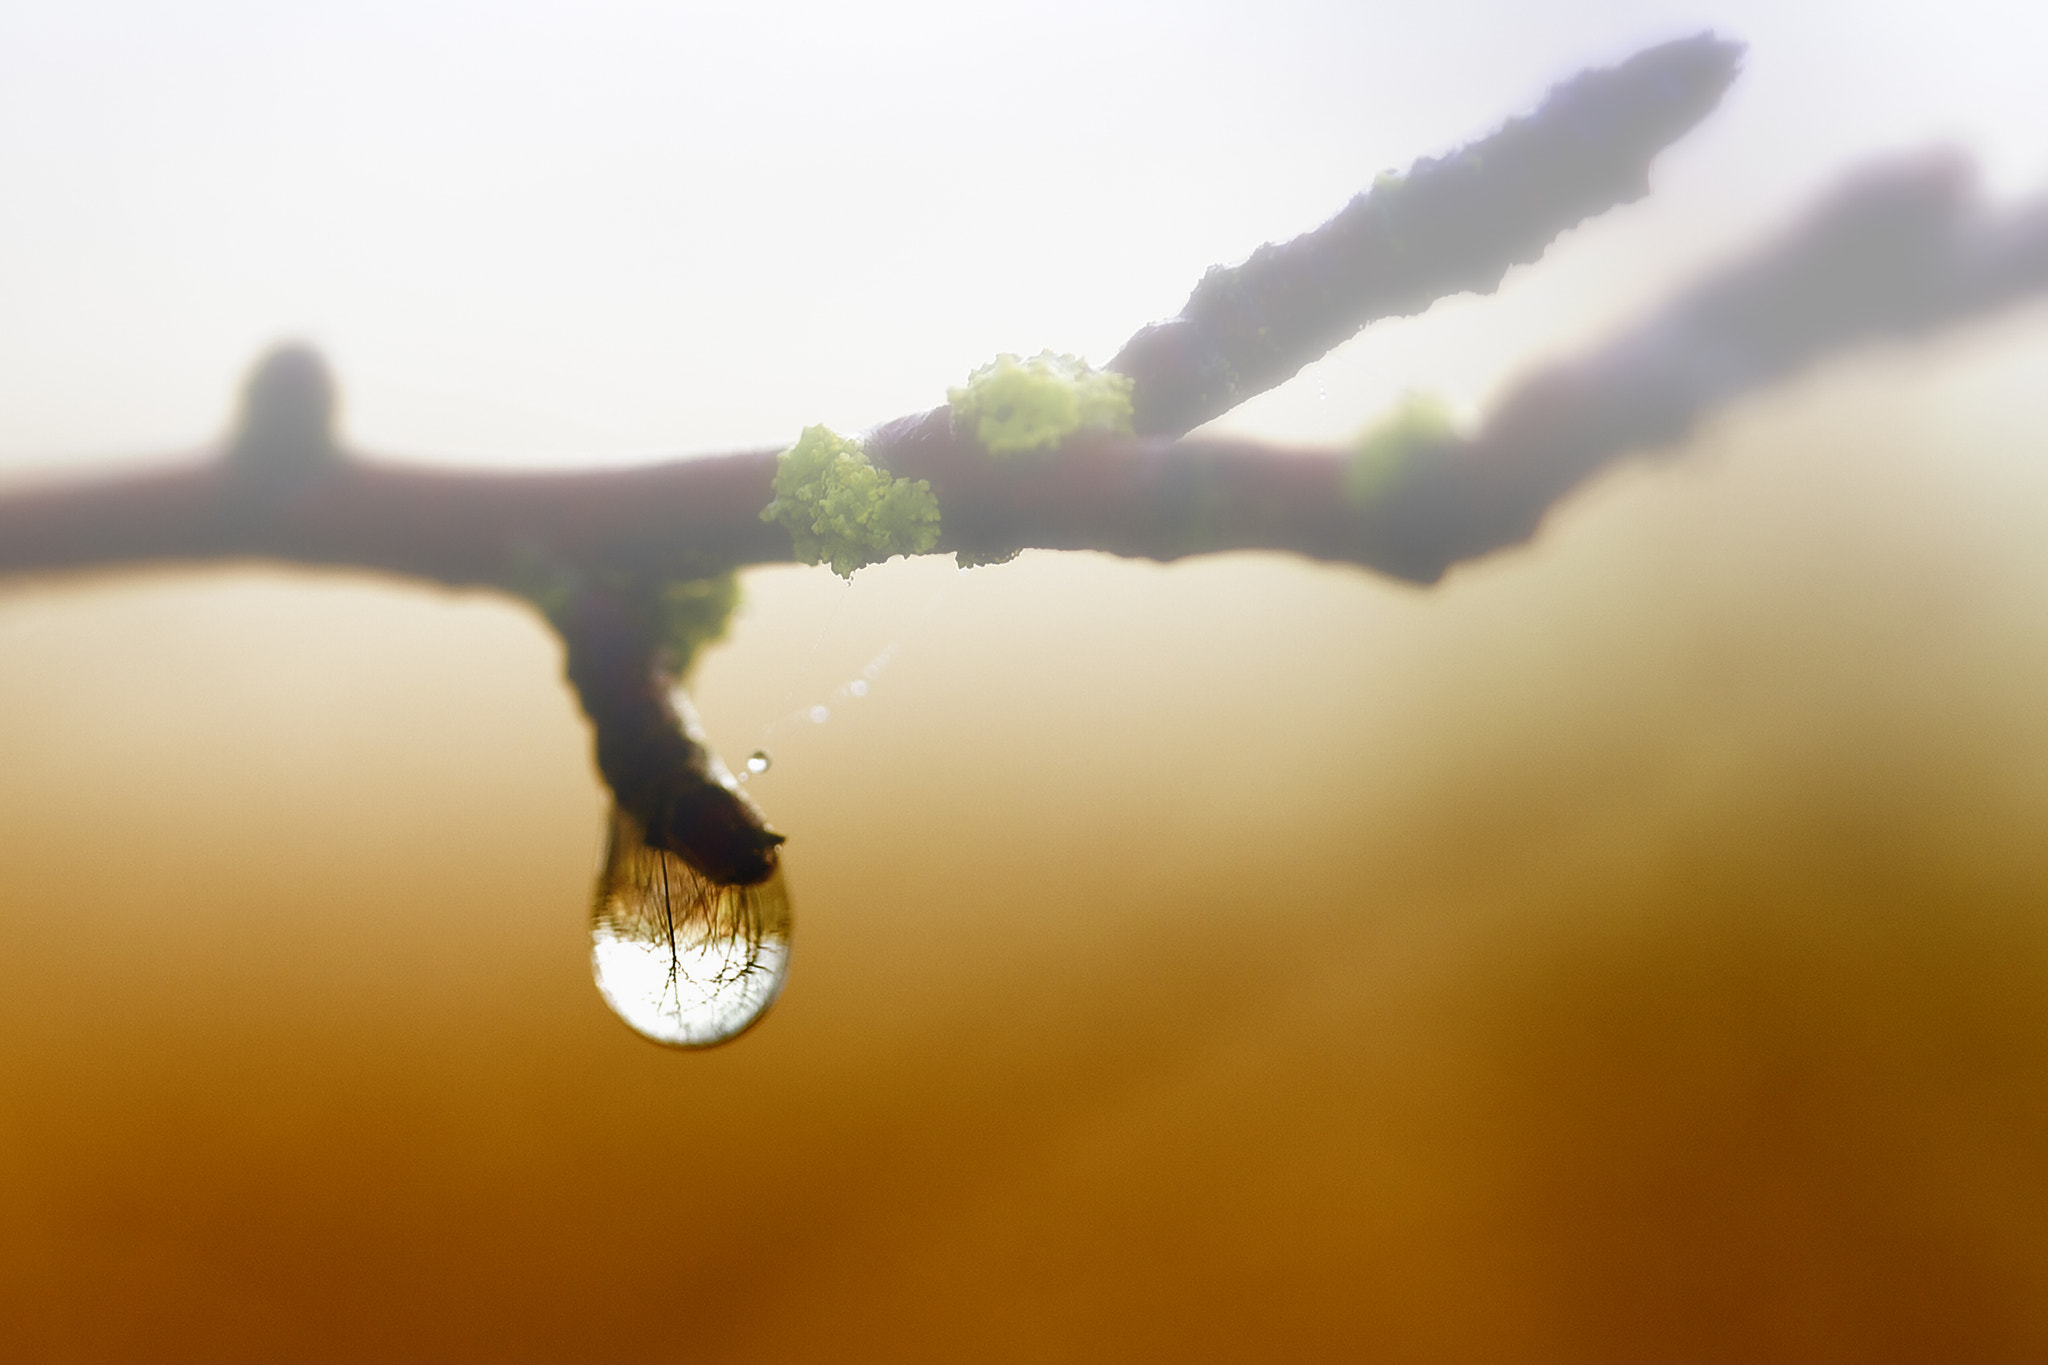 Photograph Water Droplet in Branch by Xavier Wiechers on 500px